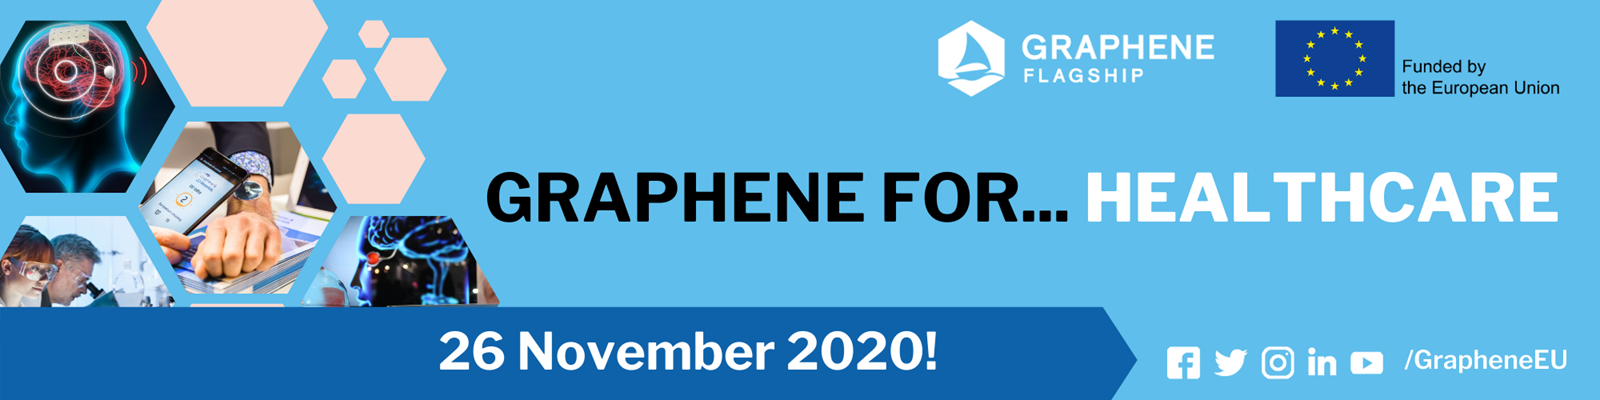 Graphene for healthcare banner.